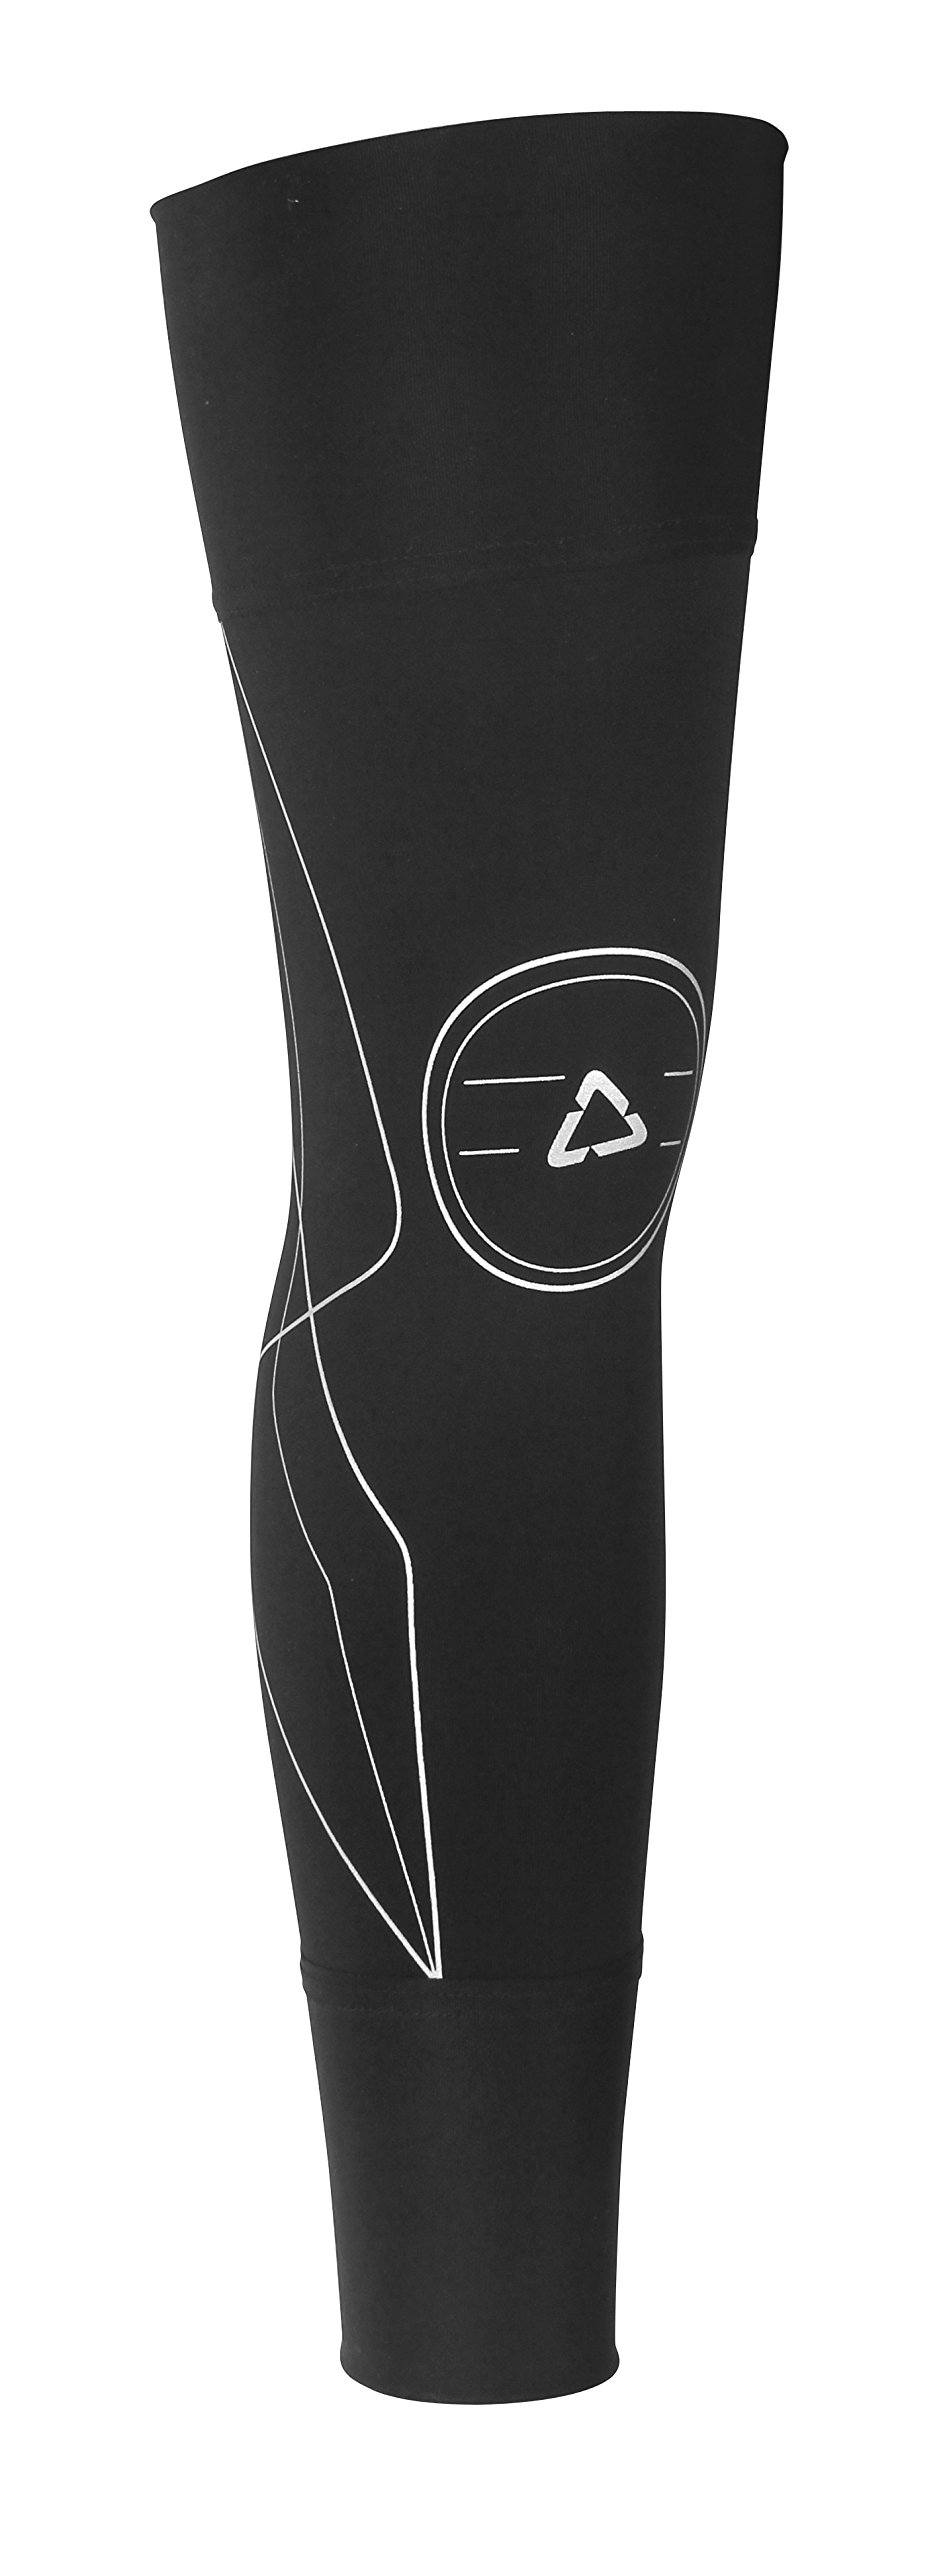 Leatt Knee Brace Sleeve (Black, Small/Medium) - Pair